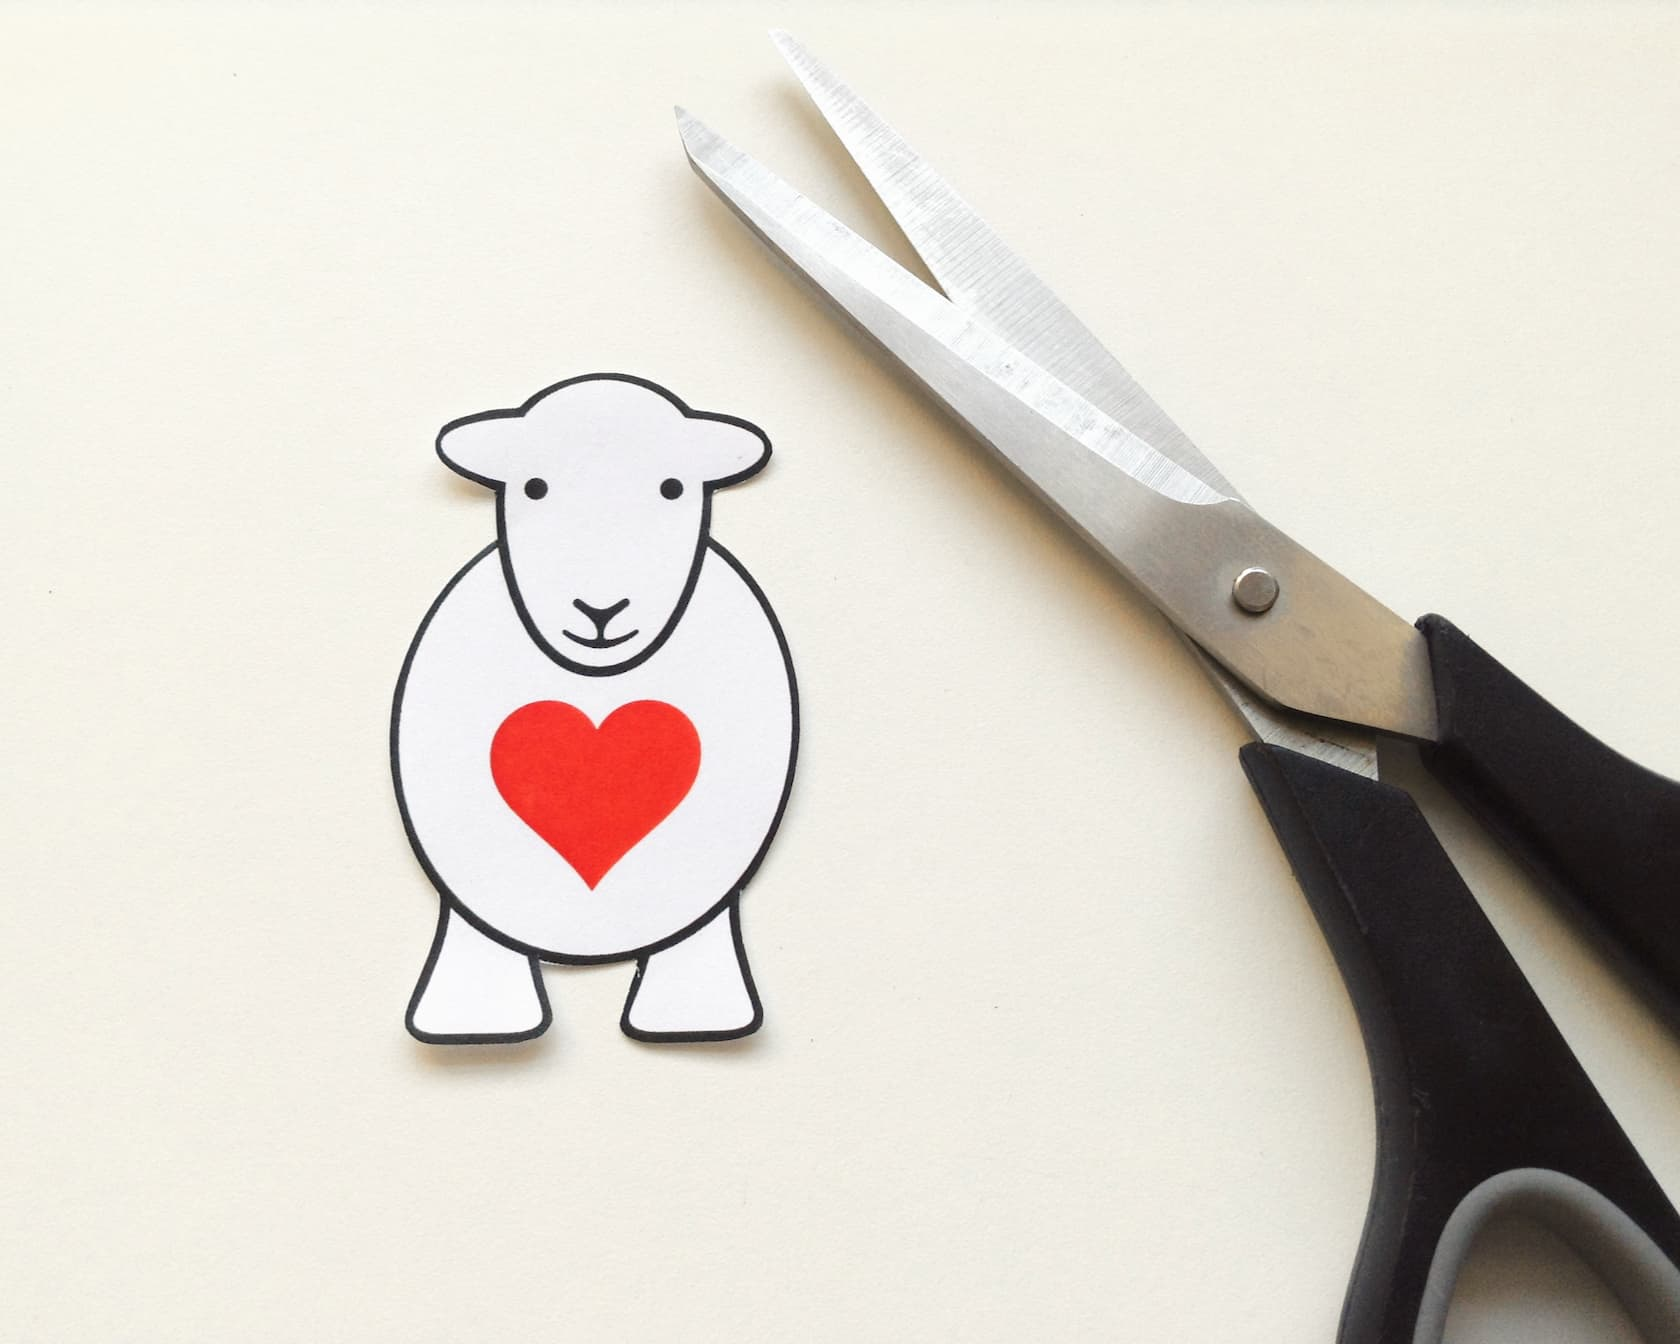 Cut out the Herdy Yan Love Ewe shape